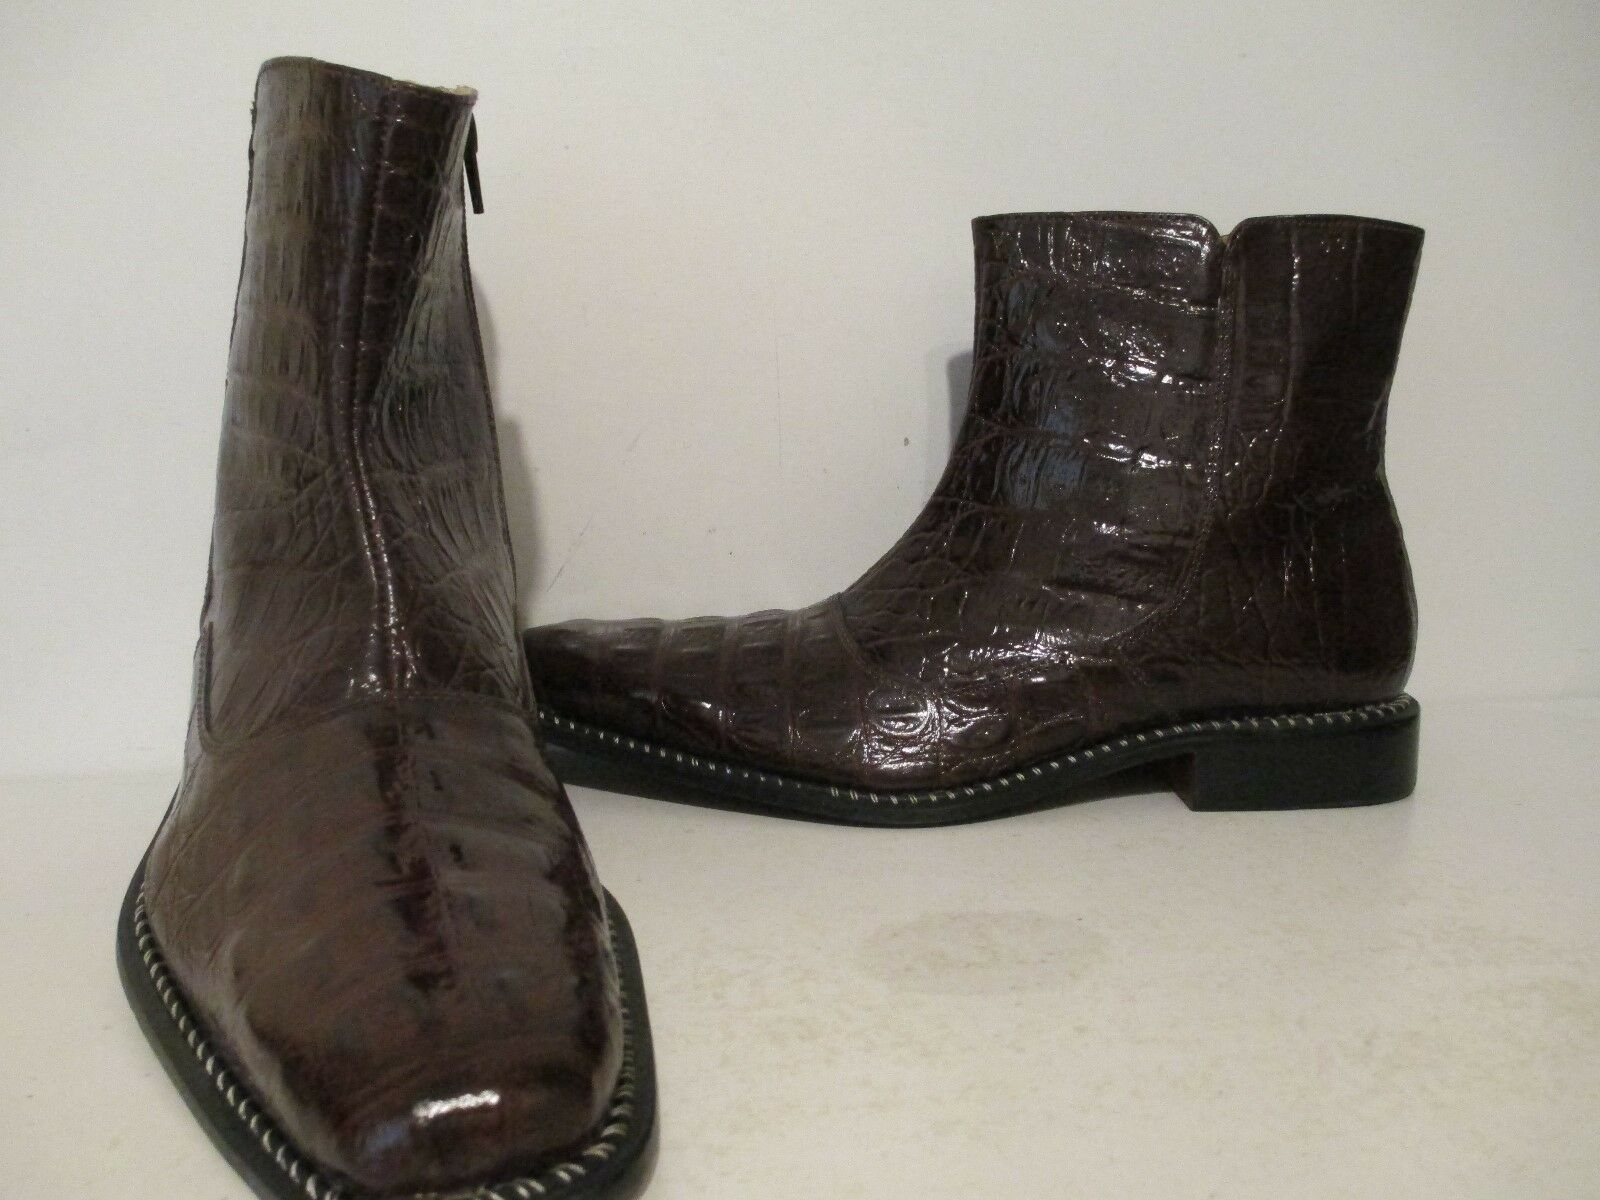 Giorgio Brutini Uomo Canto 20020 Hornback Croco Print Dress Boot Brown Size 11 M